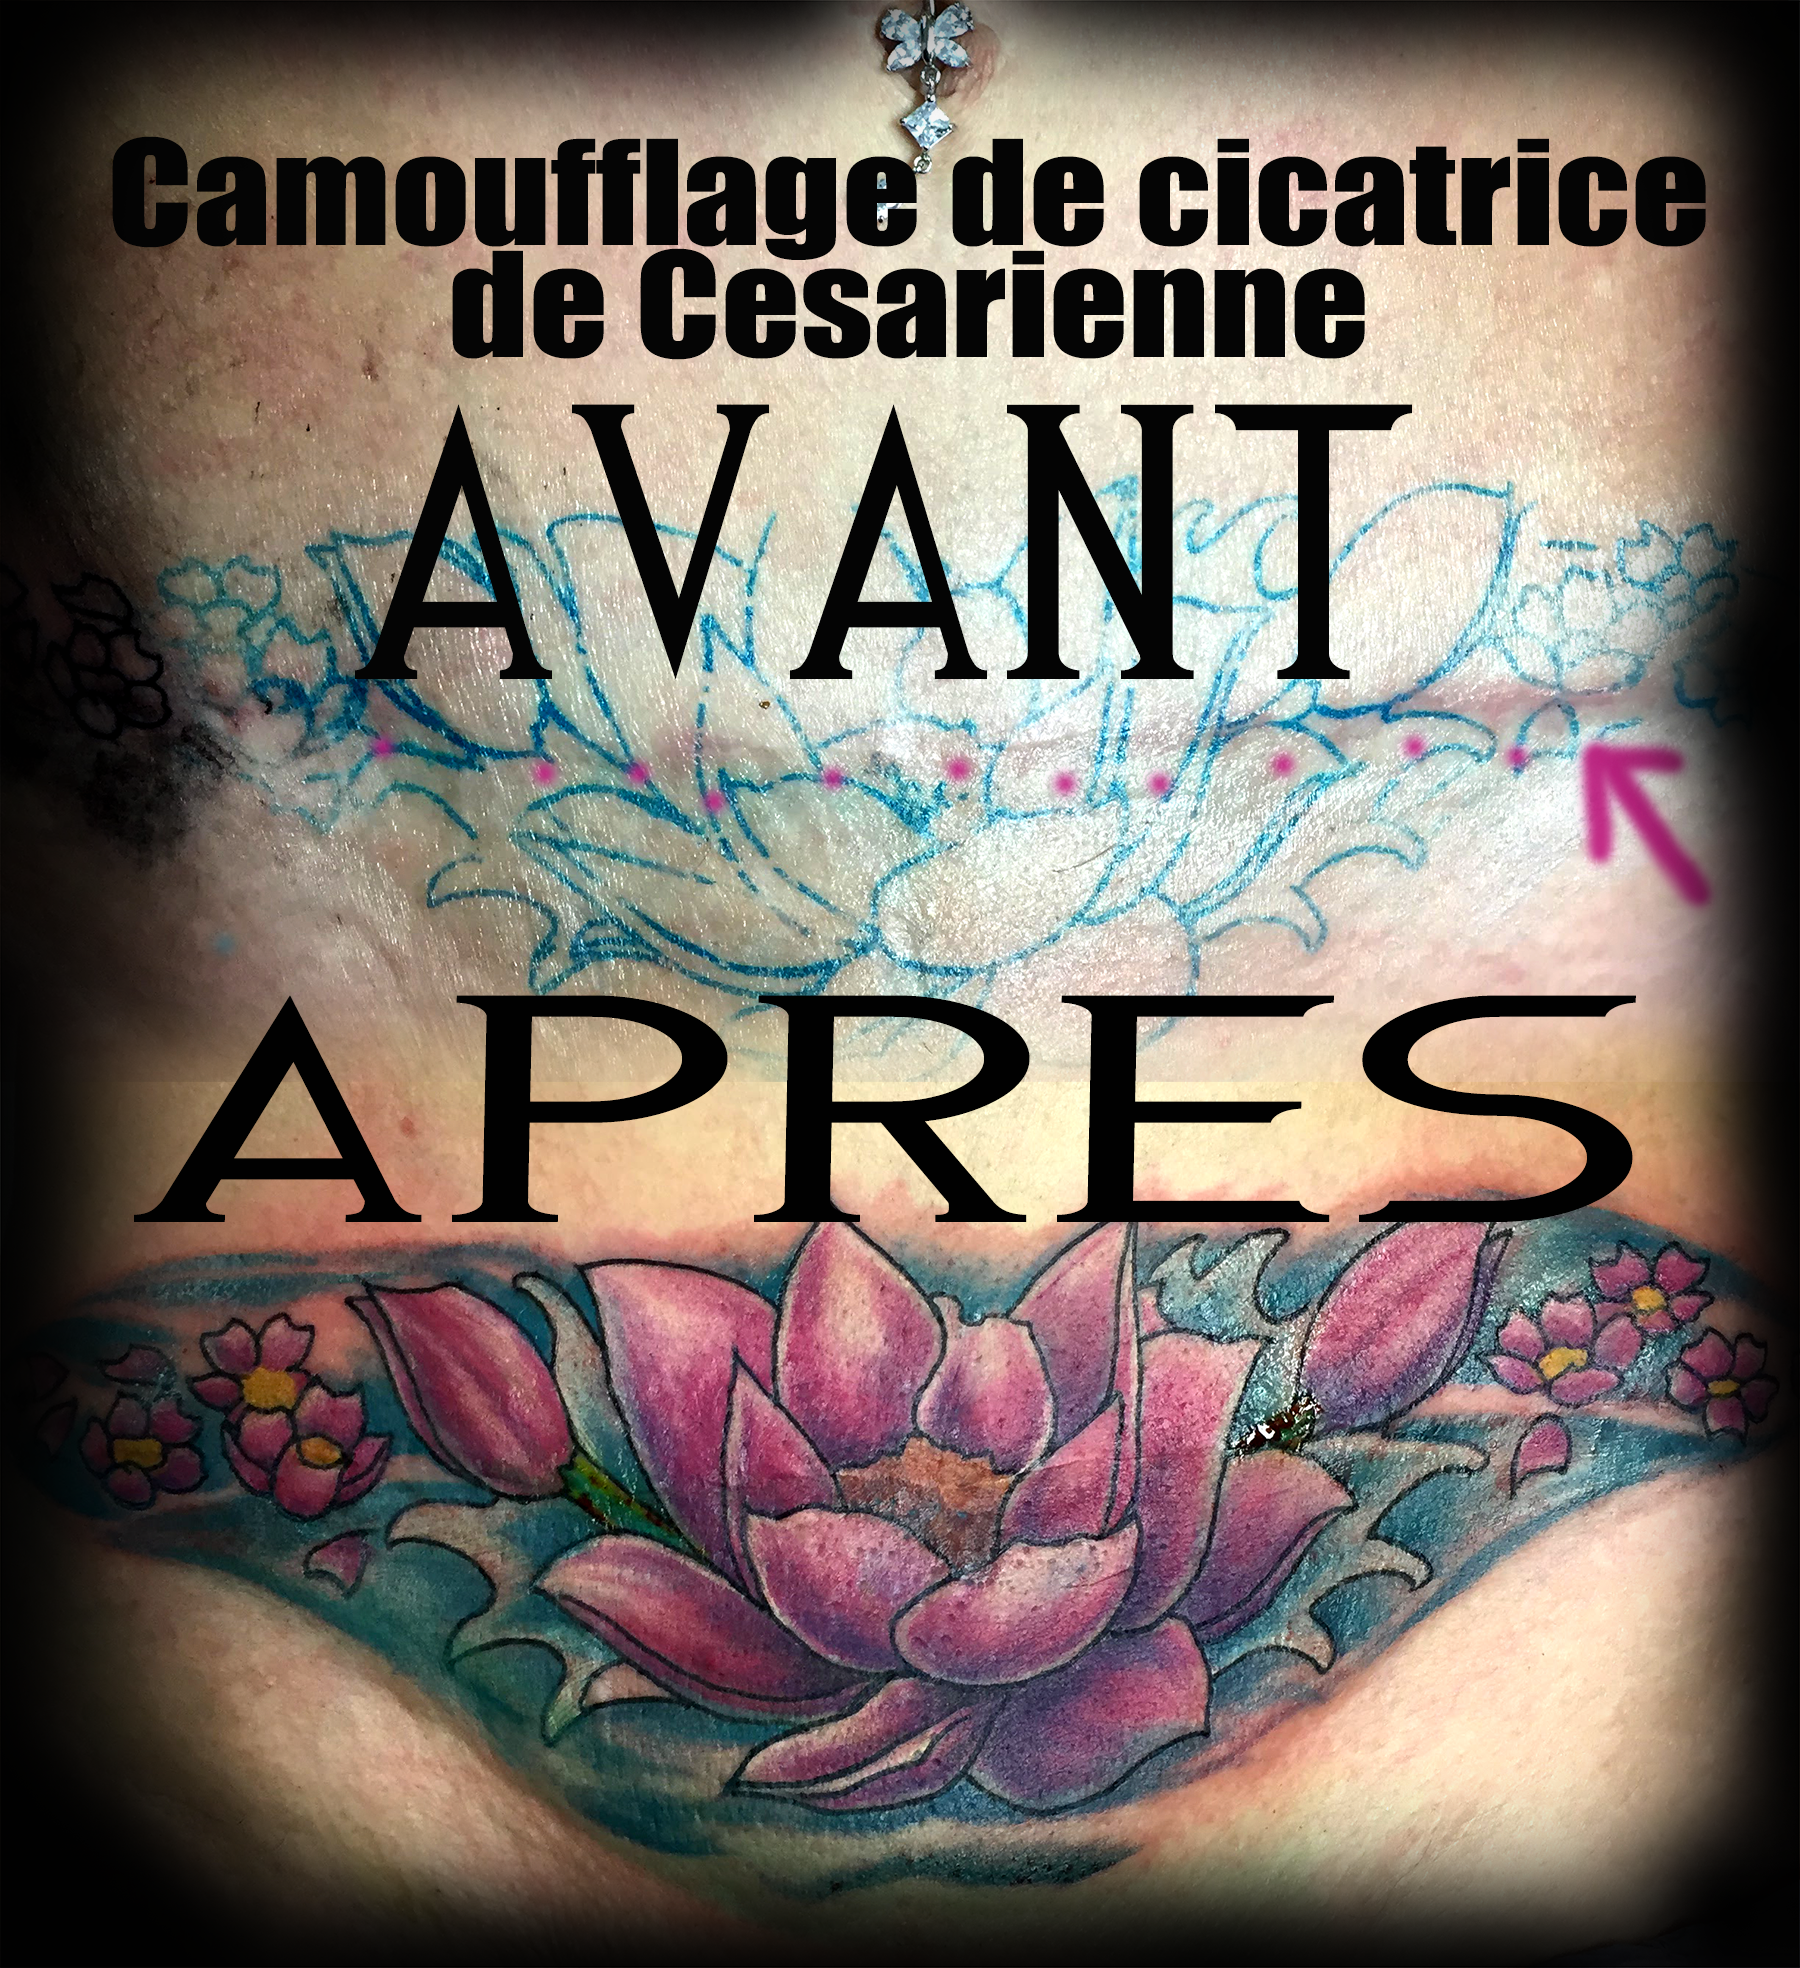 Tatouage D Un Cover Up De Cicatrice De Cesarienne Cacher Cicatrice